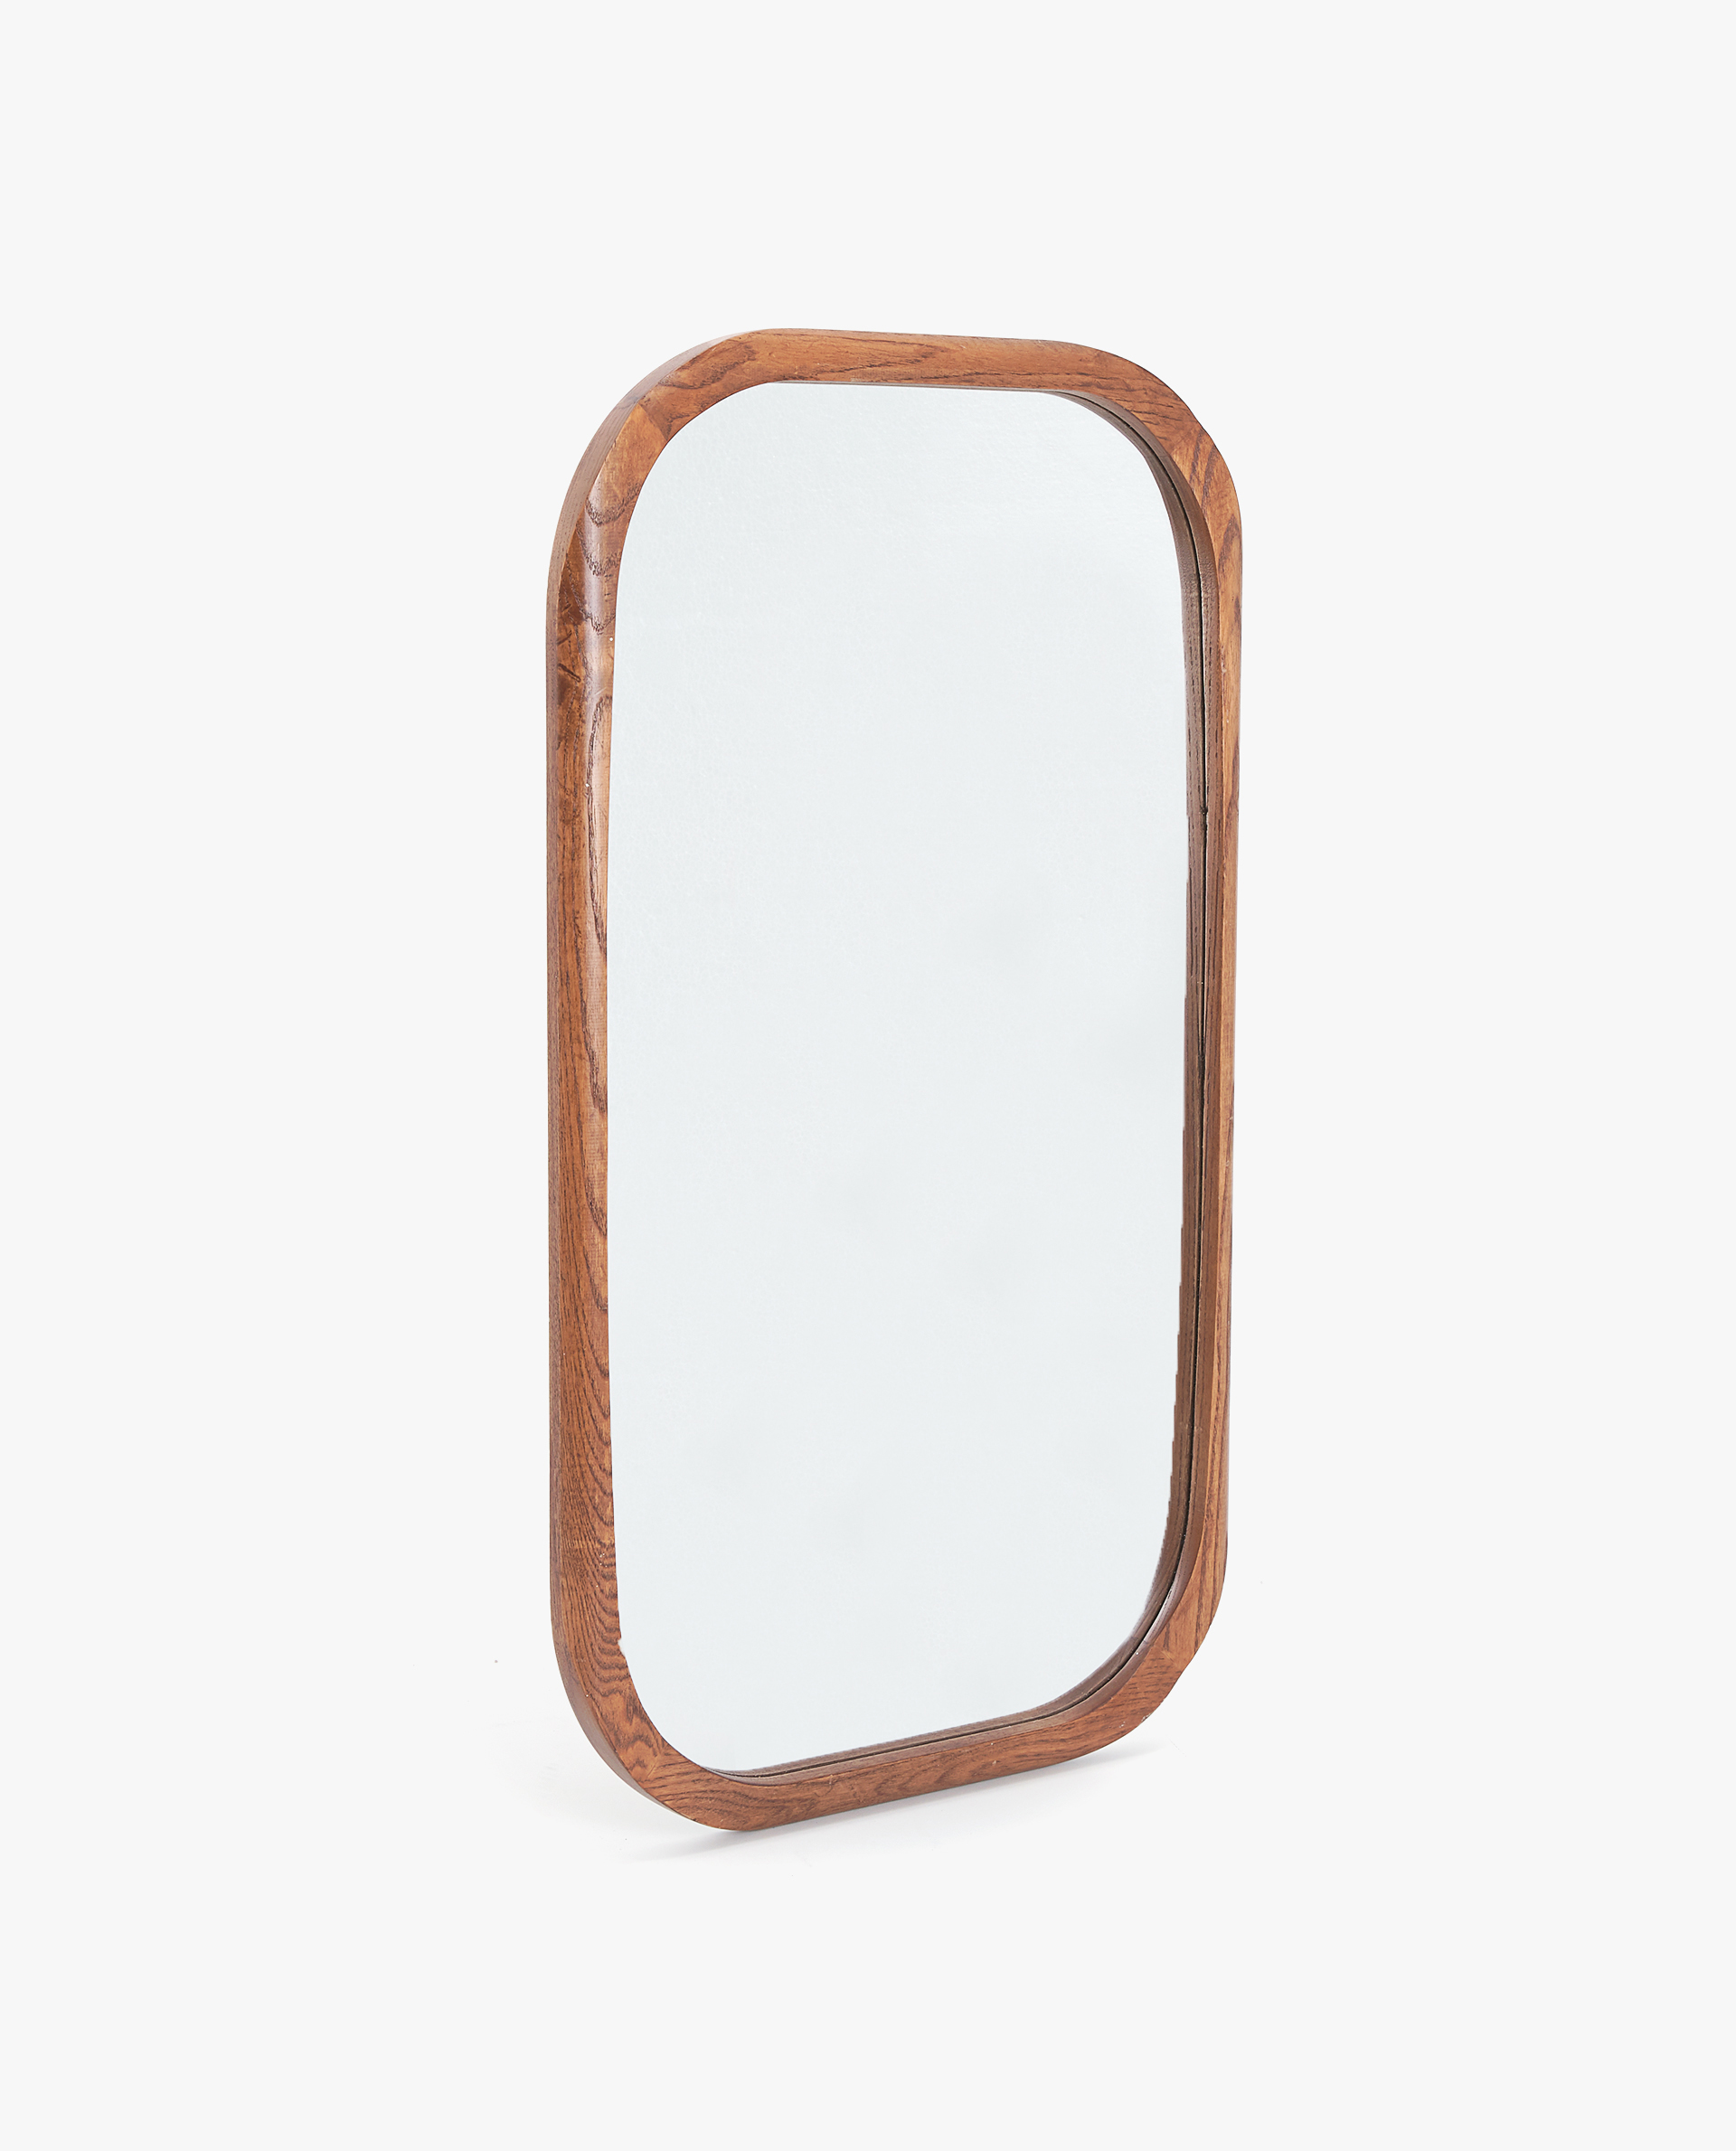 RECTANGULAR WOODEN MIRROR